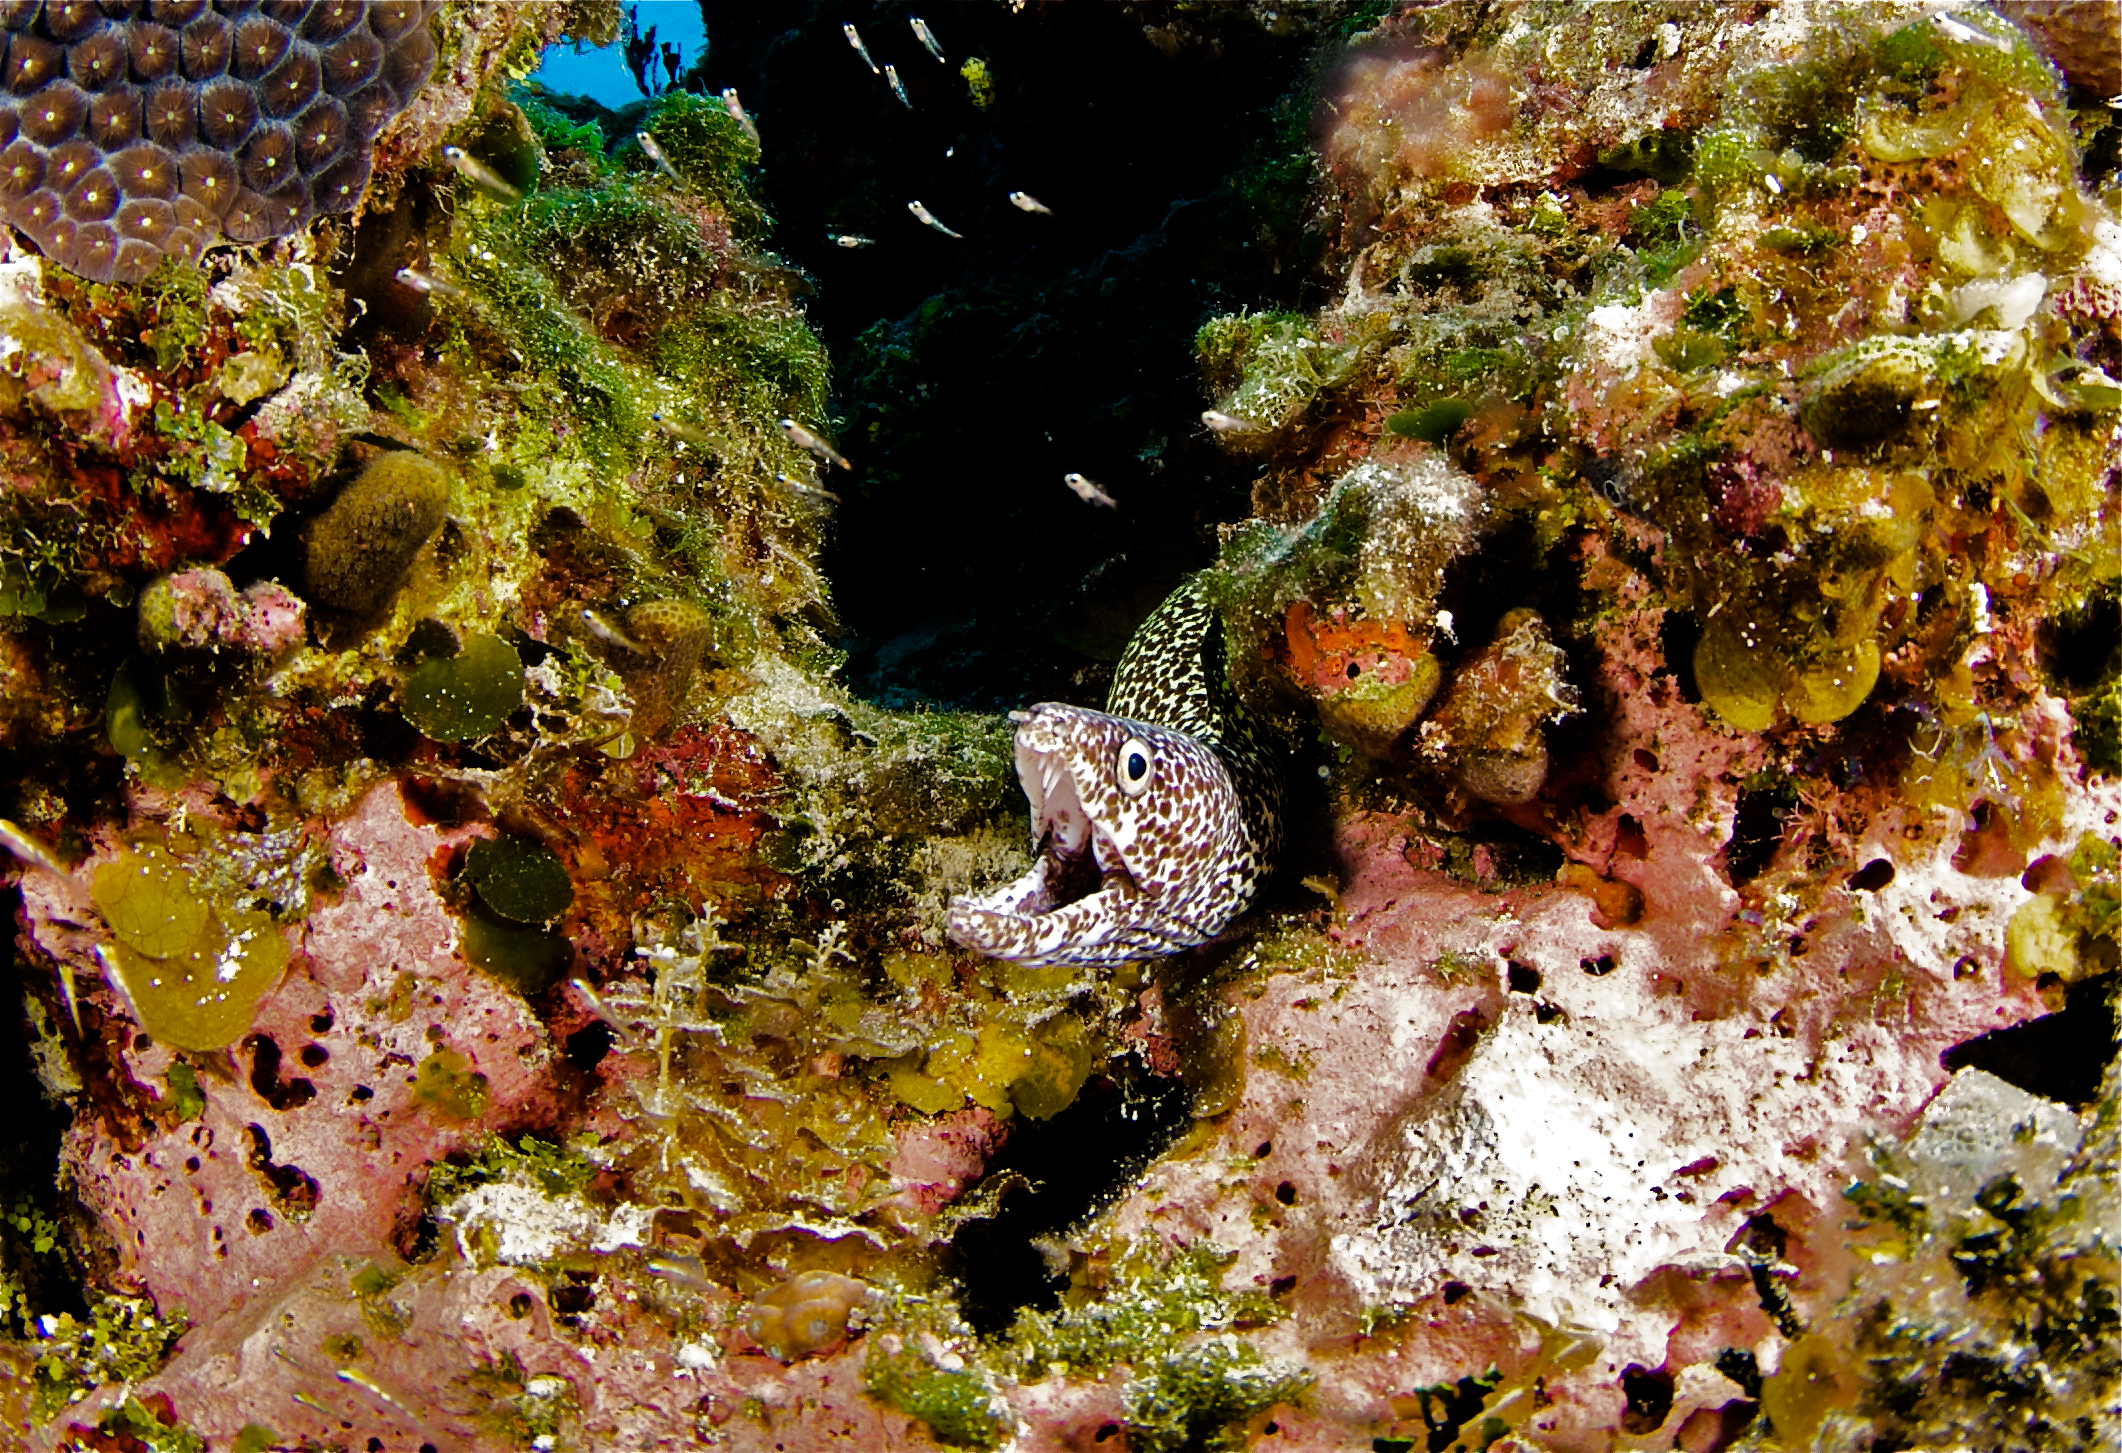 Golden Spotted Moray Eel